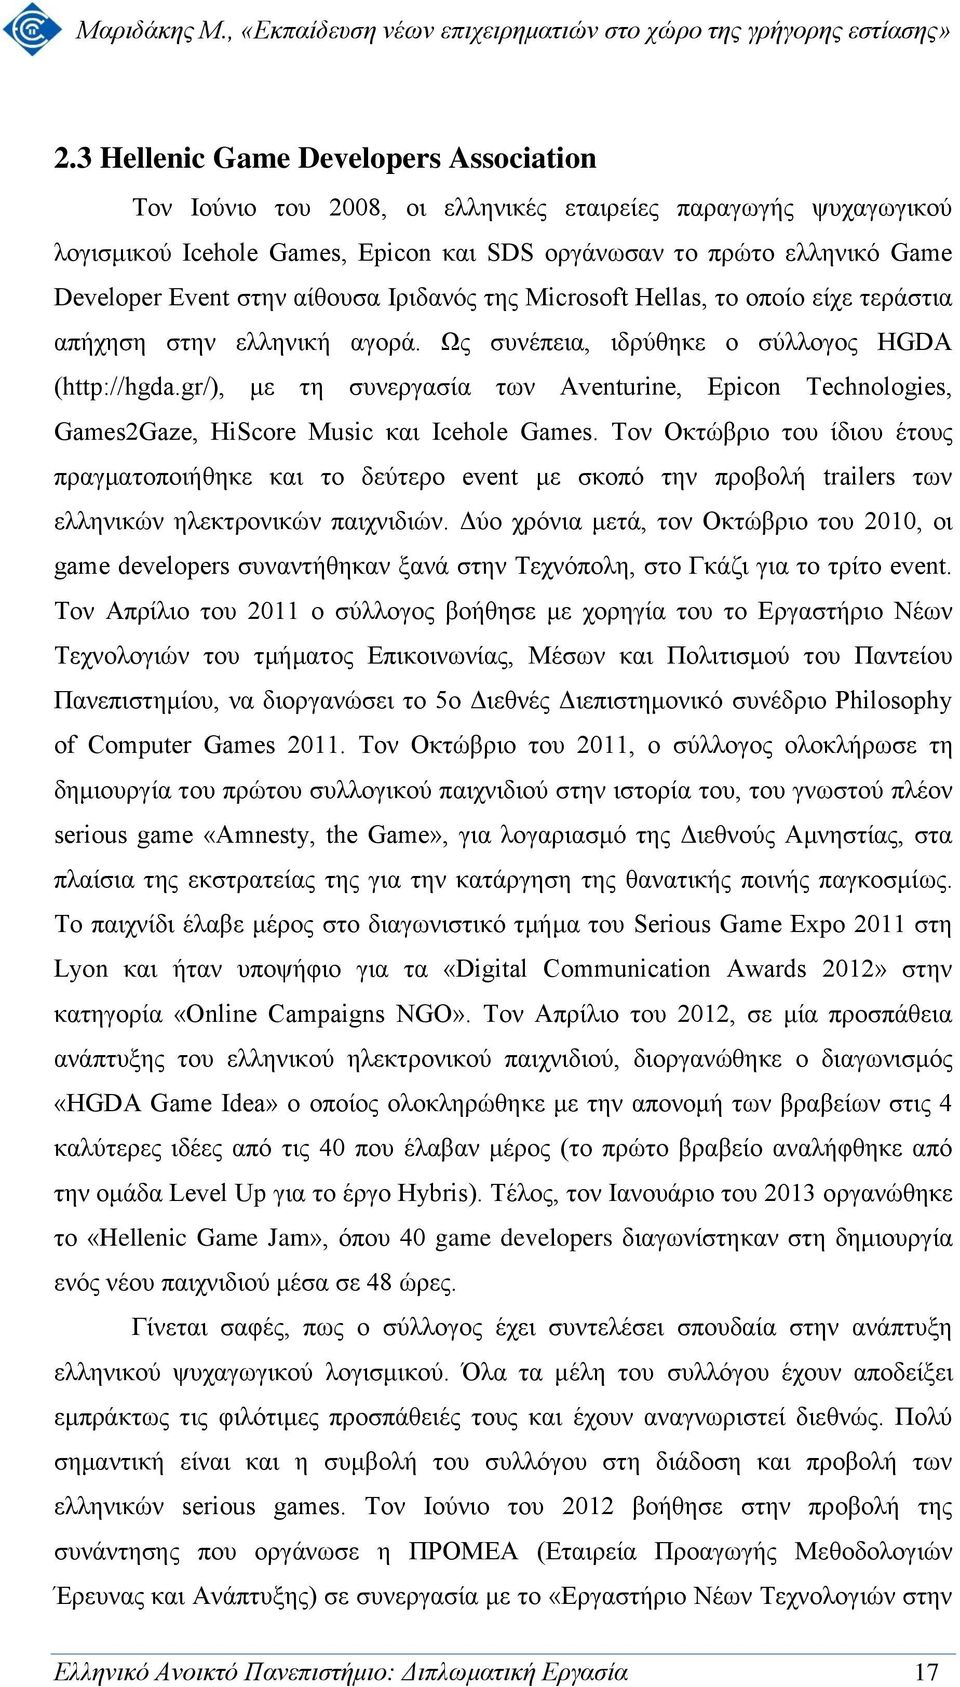 gr/), με τη συνεργασία των Aventurine, Epicon Technologies, Games2Gaze, HiScore Music και Icehole Games.